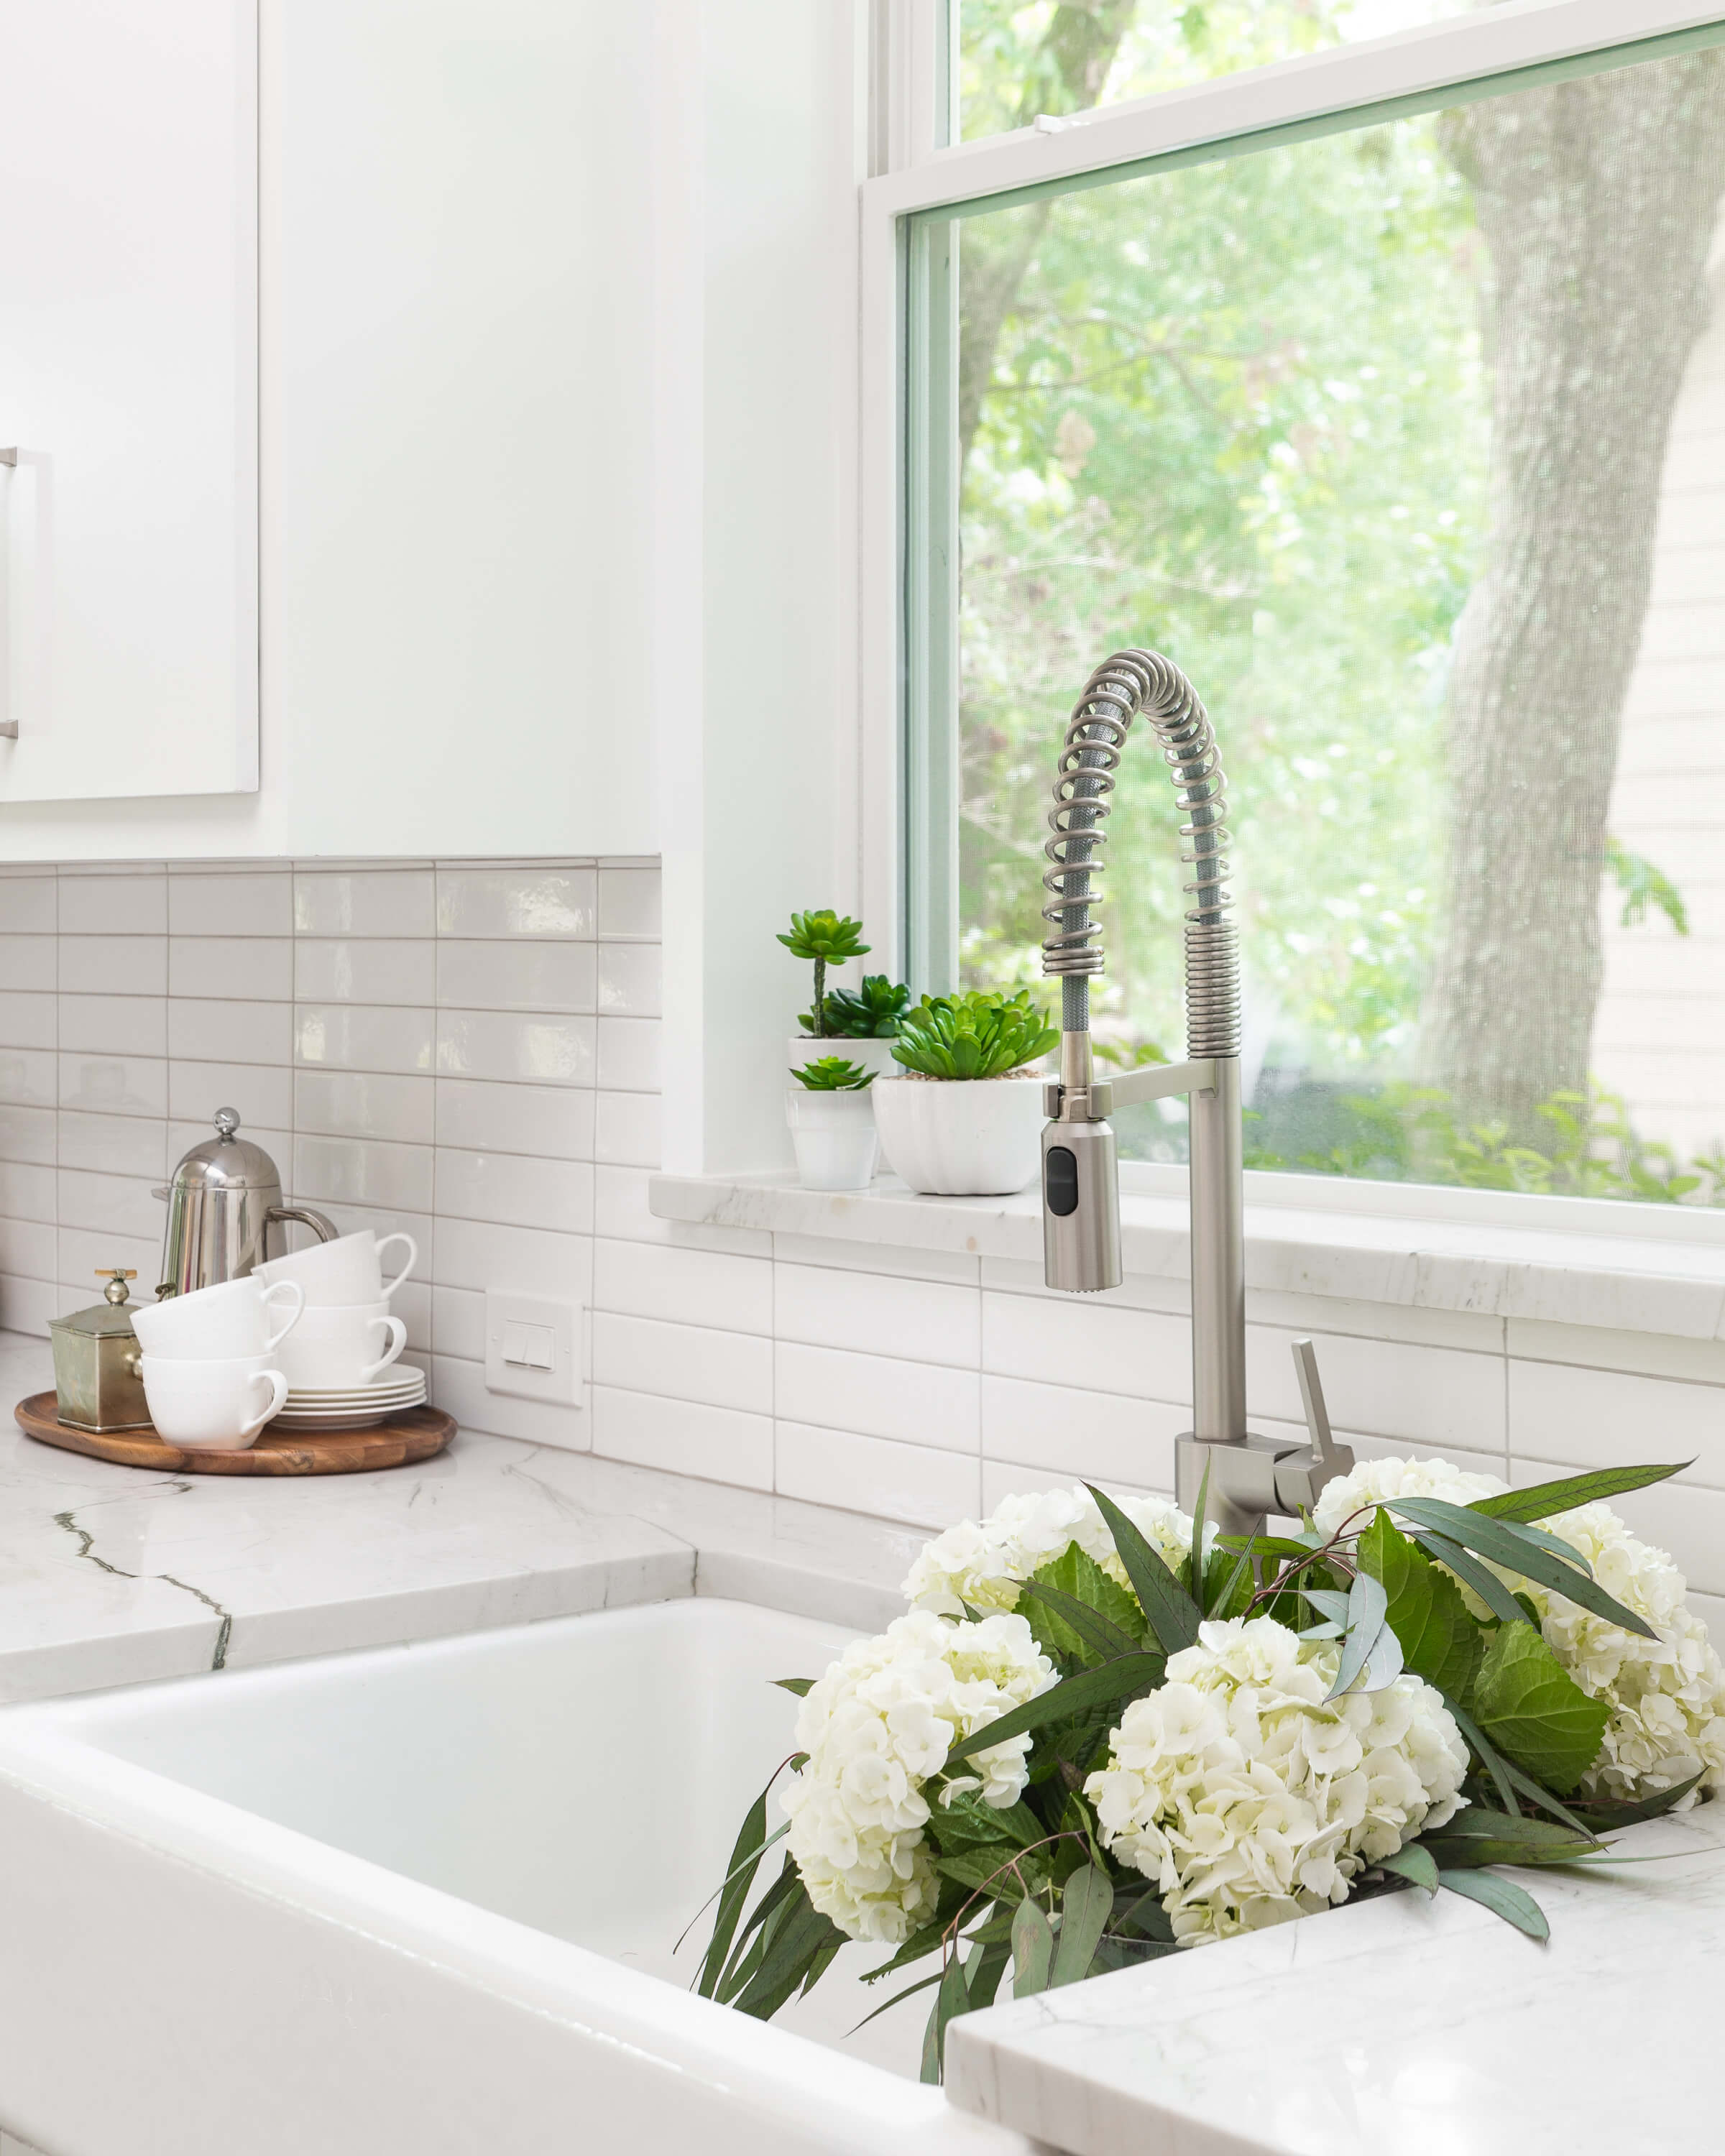 AFTER - Simple, stacked linear subway tile makes for a contemporary look in this white kitchen. Natural stone quartzite countertops add some warmth and a natural element to the contemporary space. A sill made in the same counterop material adds protection from water at the kitchen sink. Carla Aston, Designer | Colleen Scott, Photographer #whitekitchen #kitchenideas